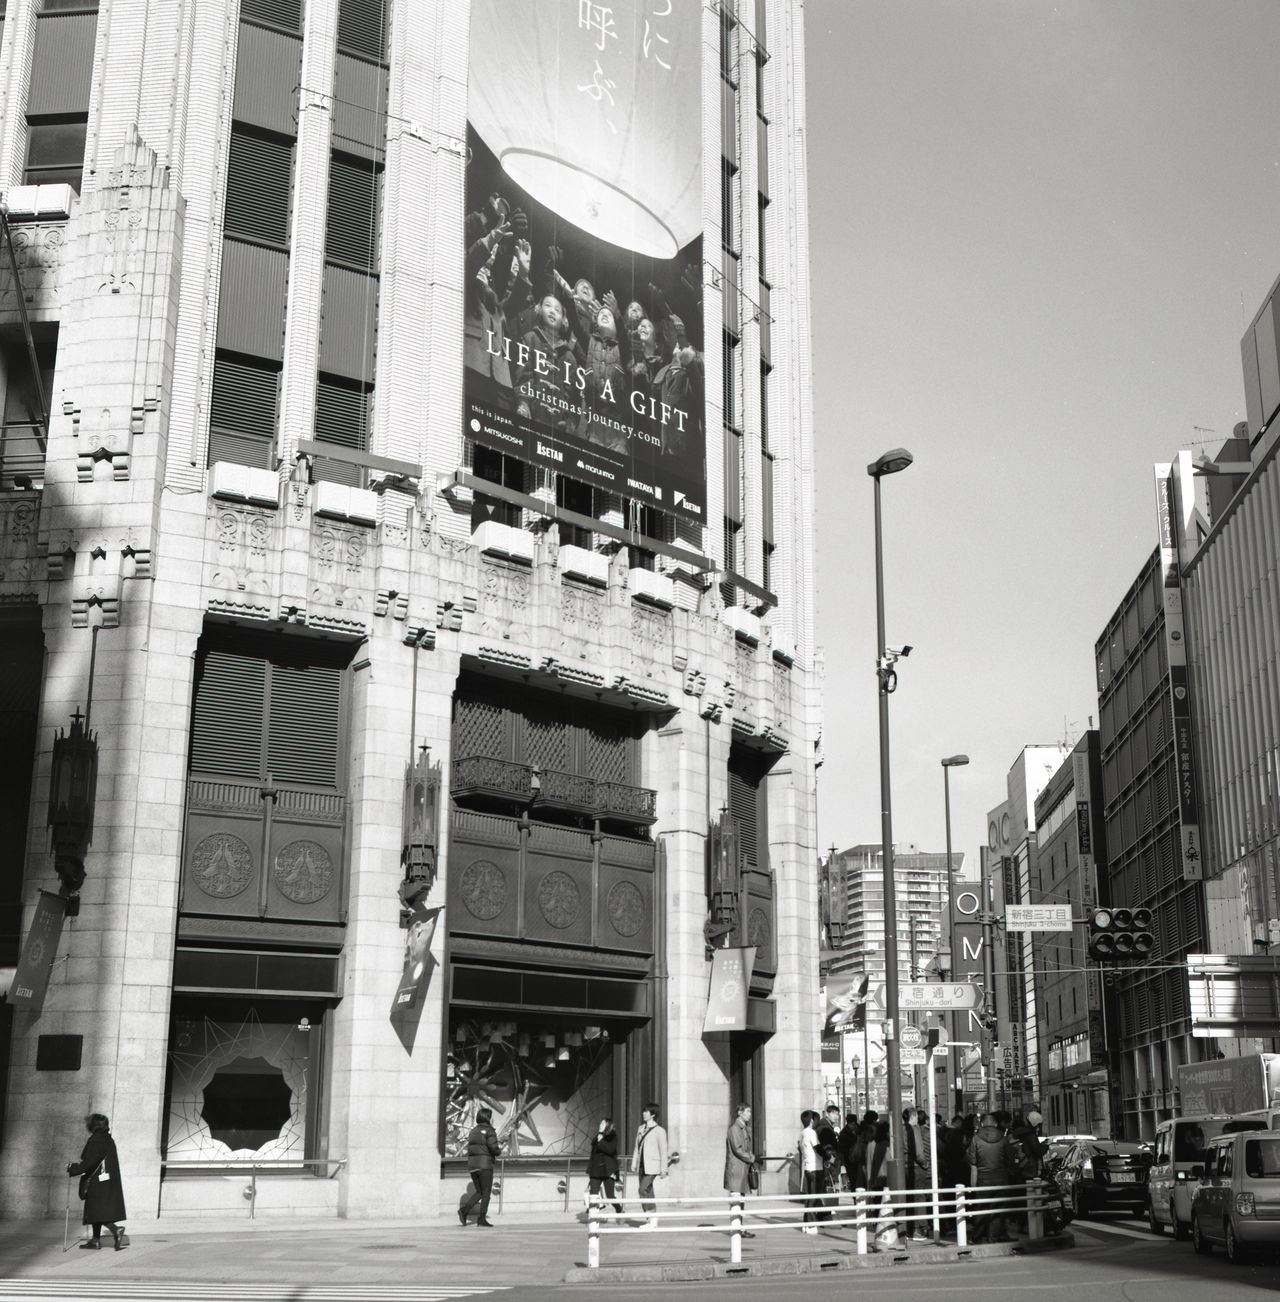 Architecture Black & White Black And White Blackandwhite Blackandwhite Photography Building Exterior Built Structure City City Life City Street City Streets  City View  Cityscape Film Film Photography Filmcamera Japan Japan Photography Monochrome People Skyscraper Street Streetphoto_bw Streetphotography Tokyo